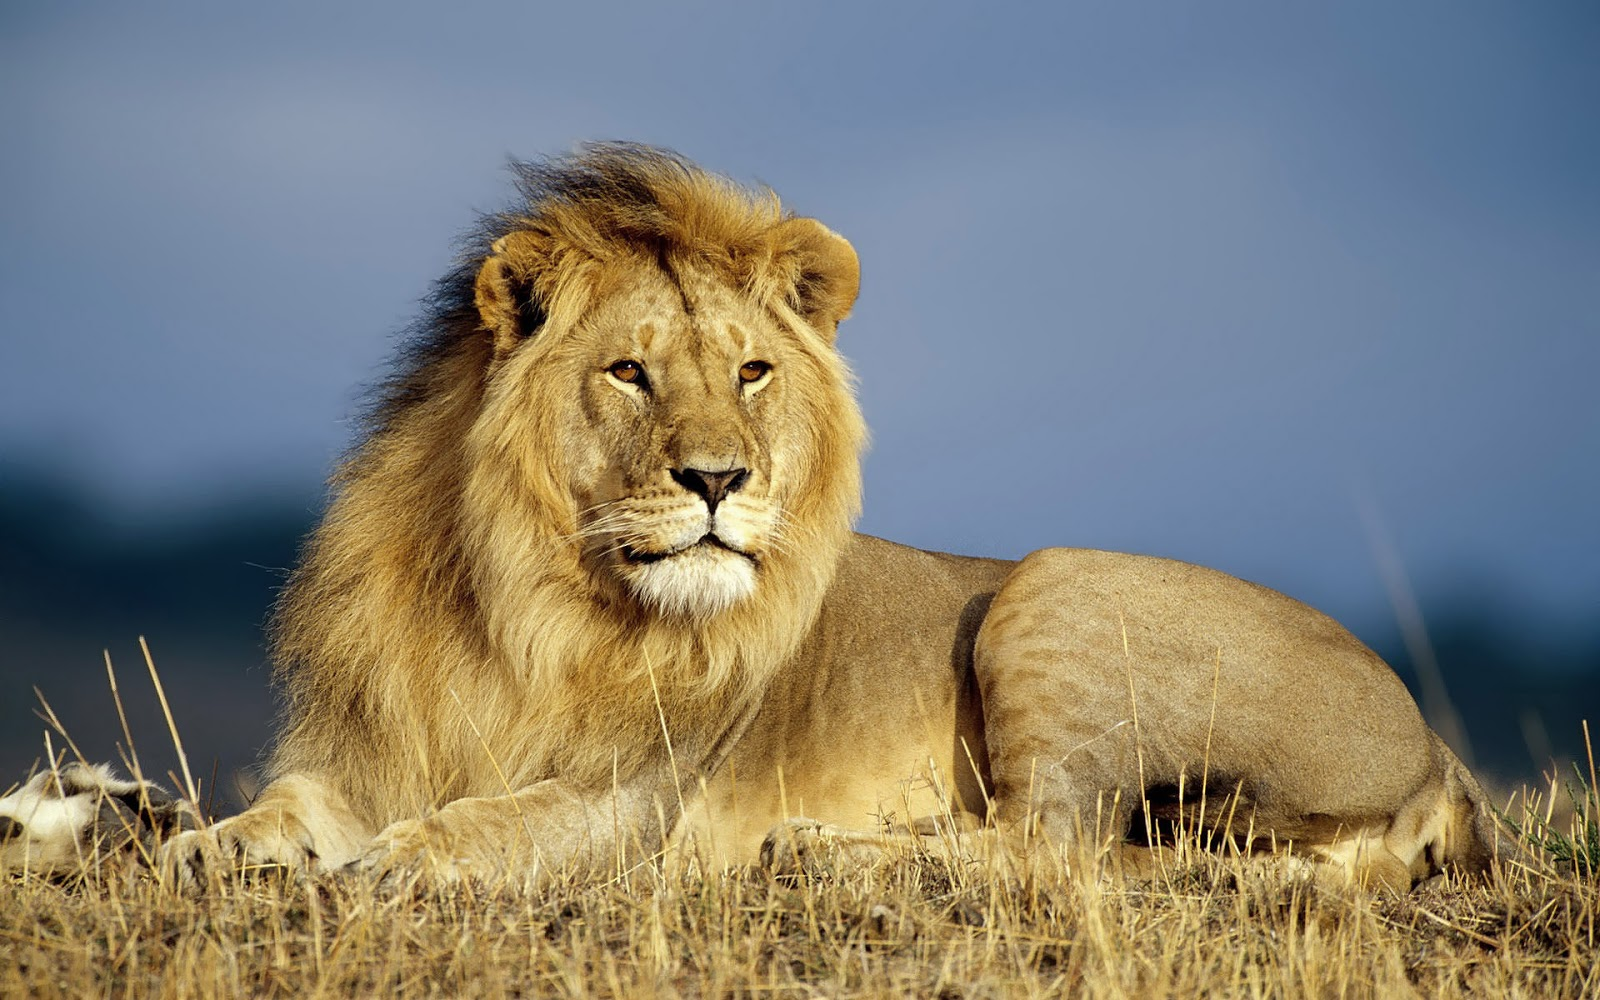 HD wallpaper Beautiful Wallpaper Of Big Lion Hd Animals Wallpapers 1600x1000